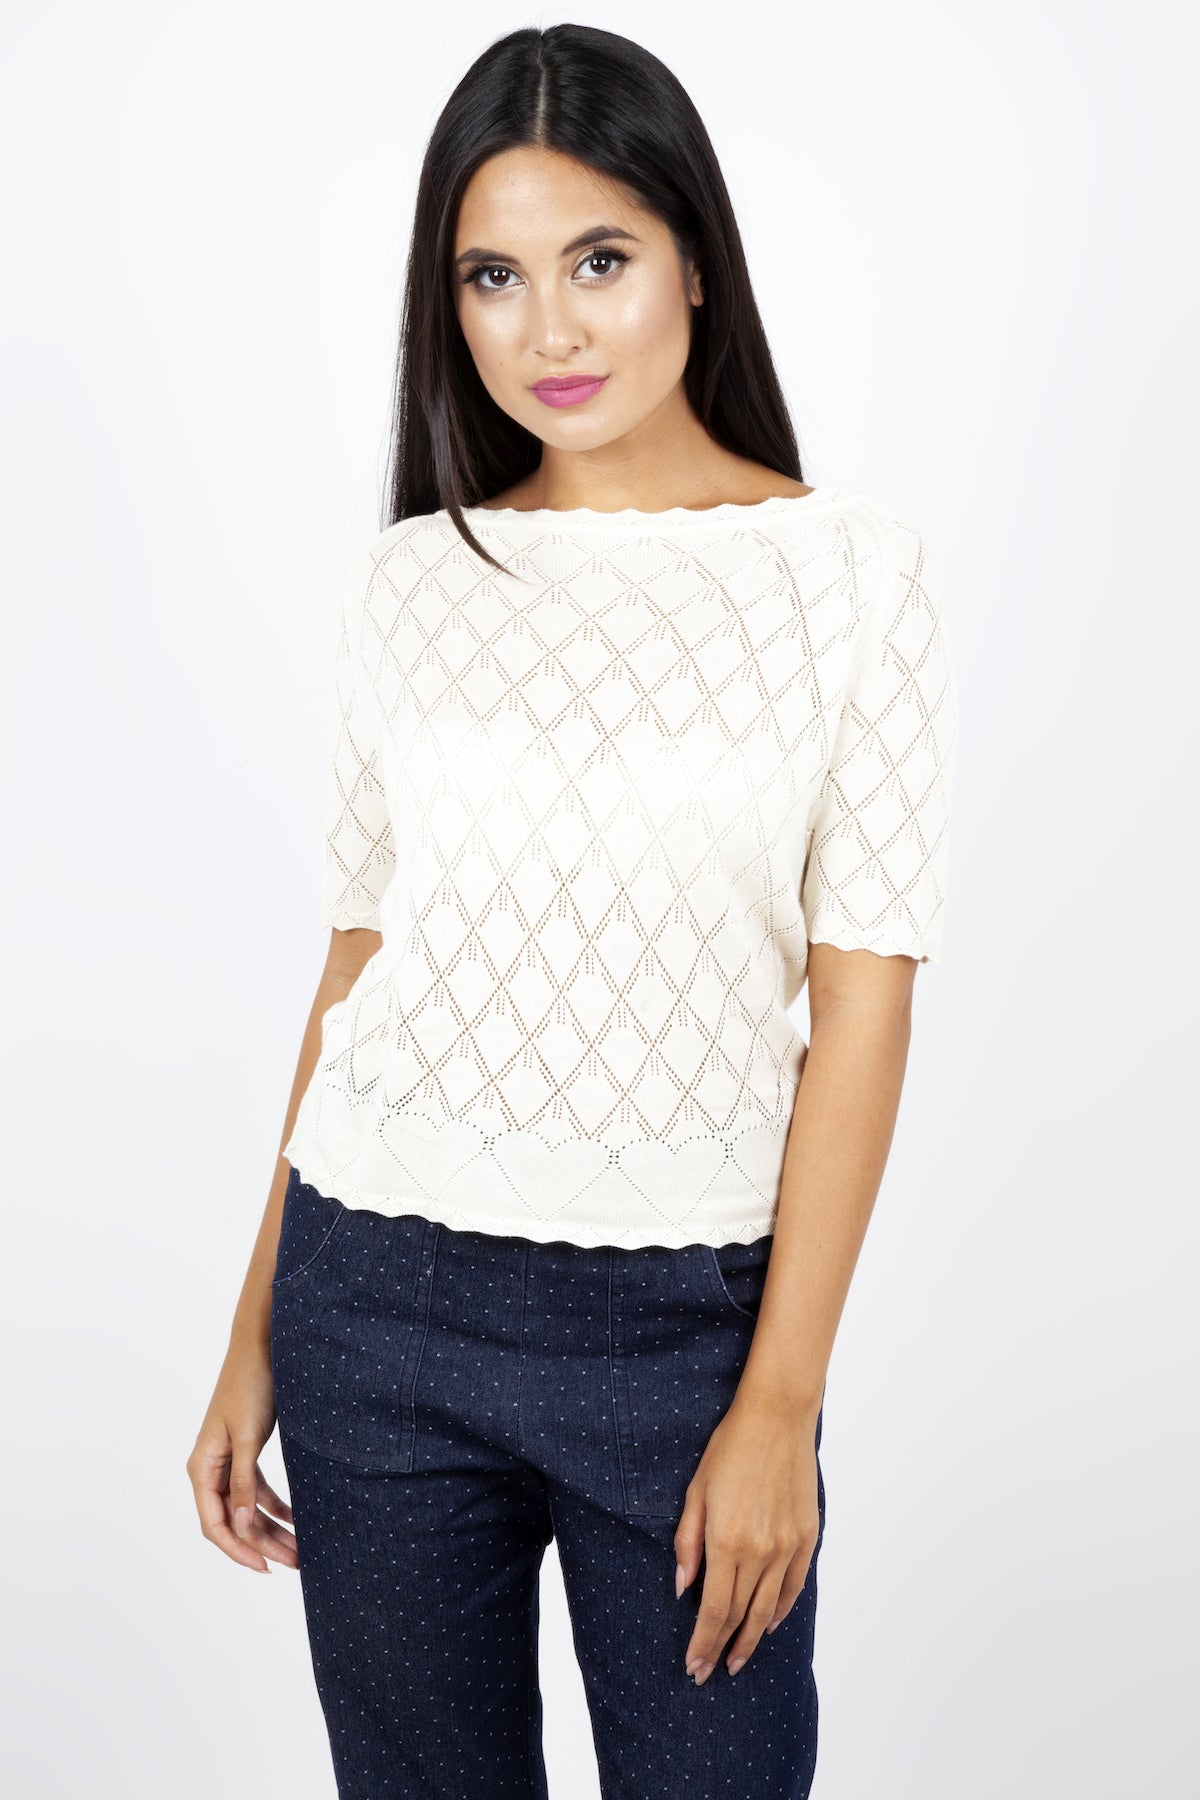 Alexandra Diamond Heart Cream Sweater by Voodoo Vixen